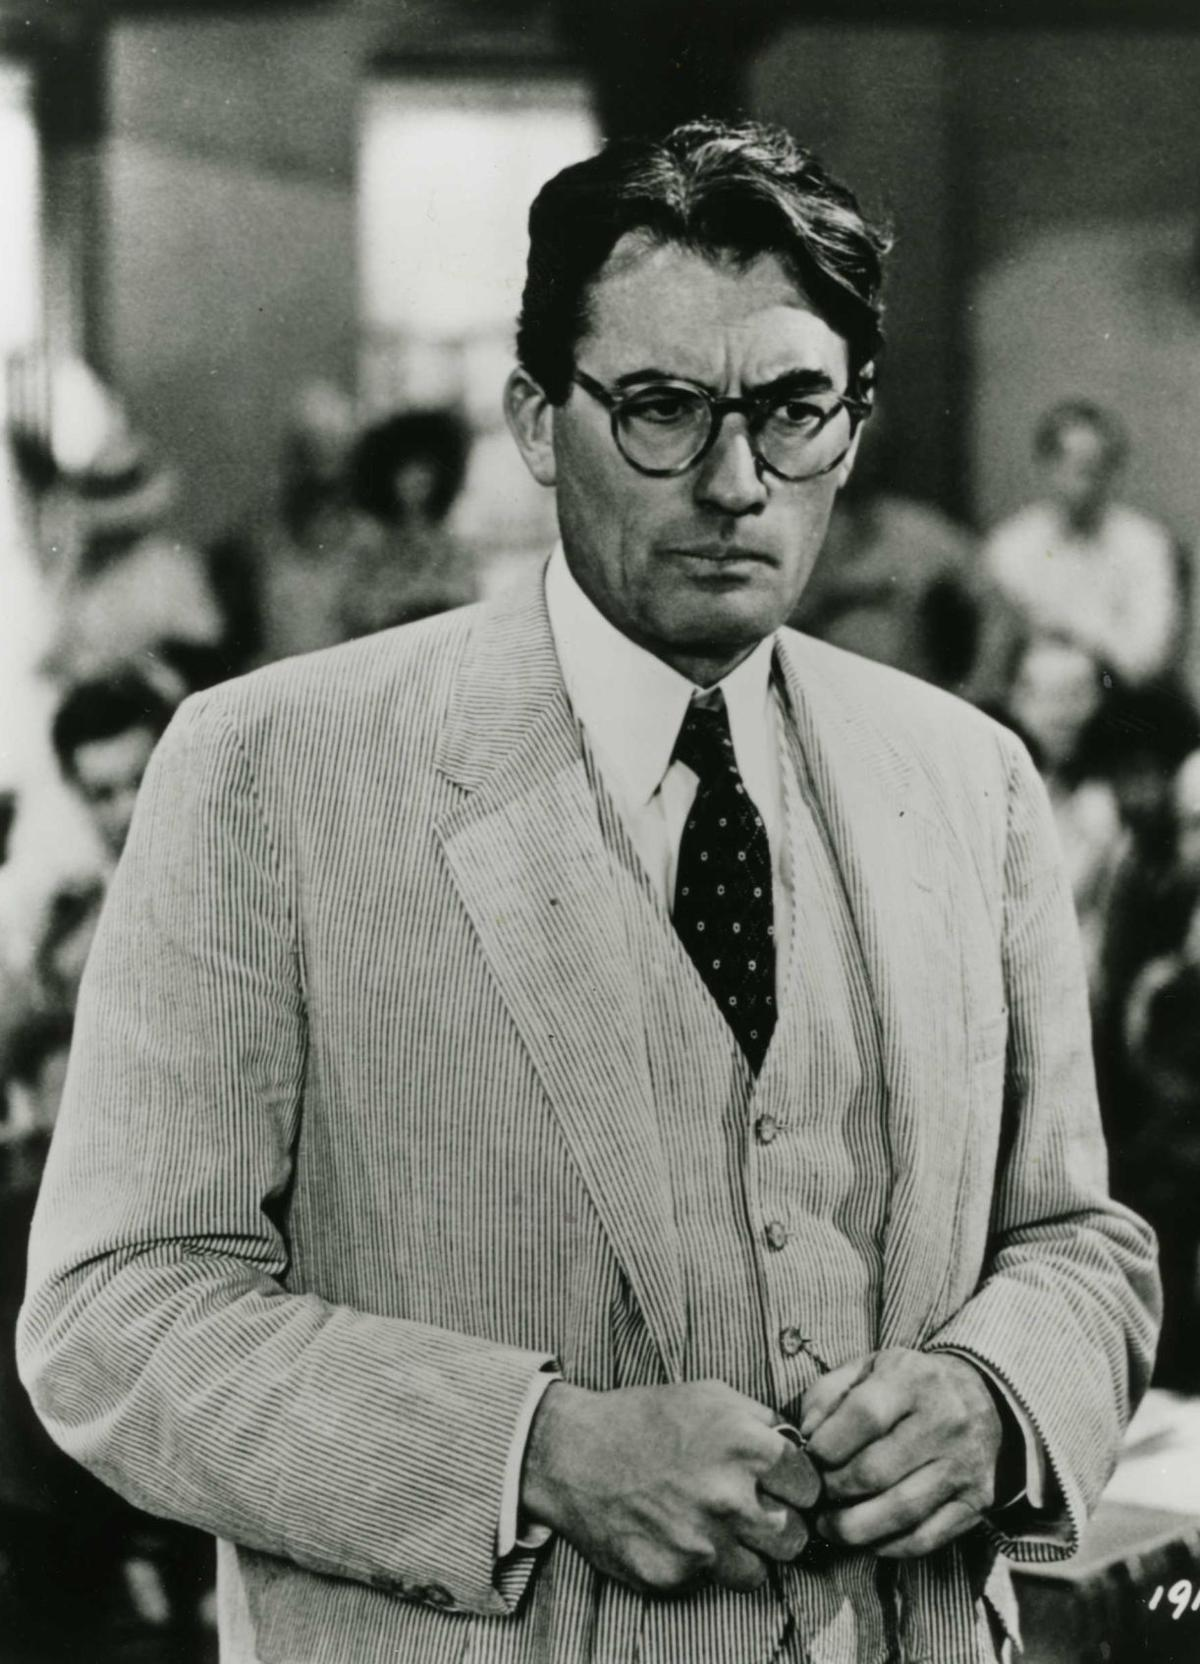 atticus finch is a hero essay Free essay on atticus finch heroism and courage available totally free at echeatcom, the largest free essay community.